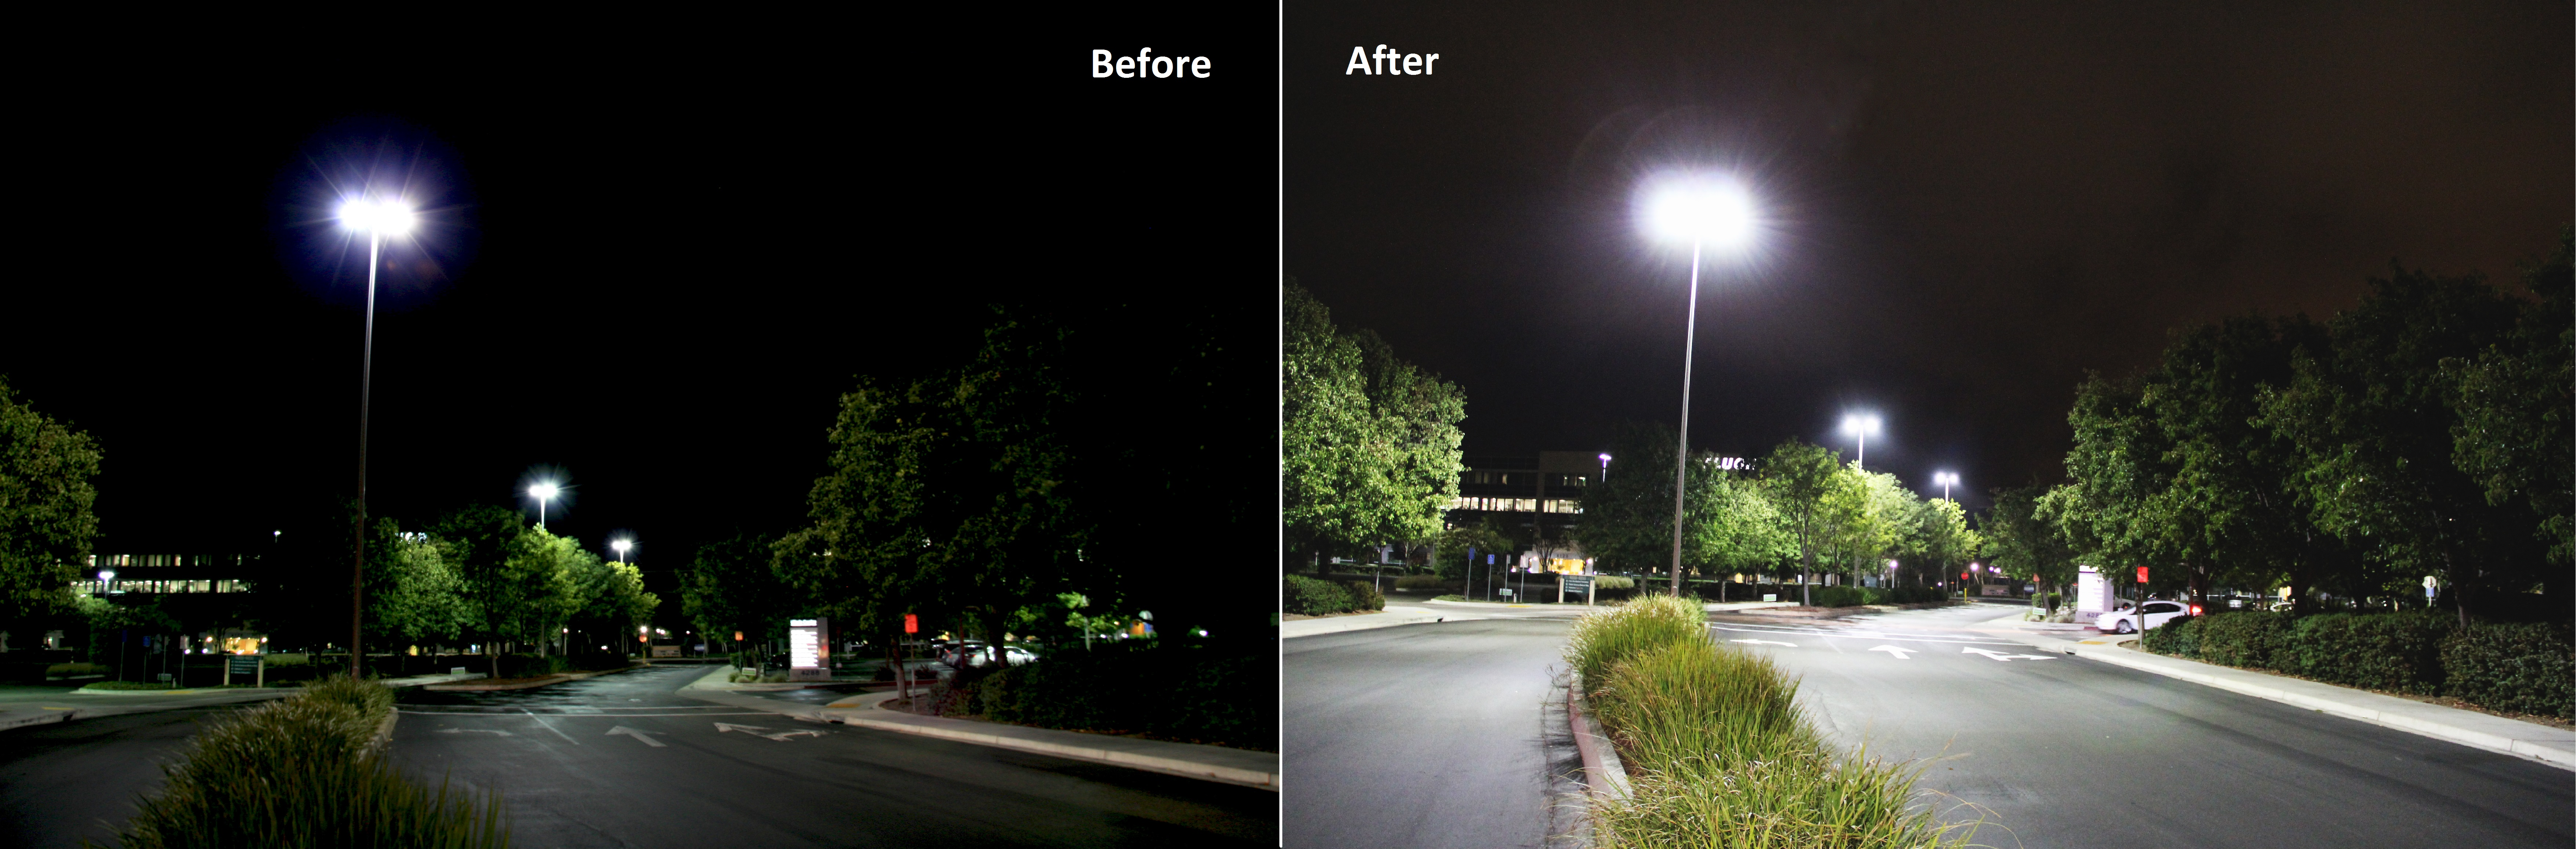 parking relumination safe helps light feel customers lighting lot